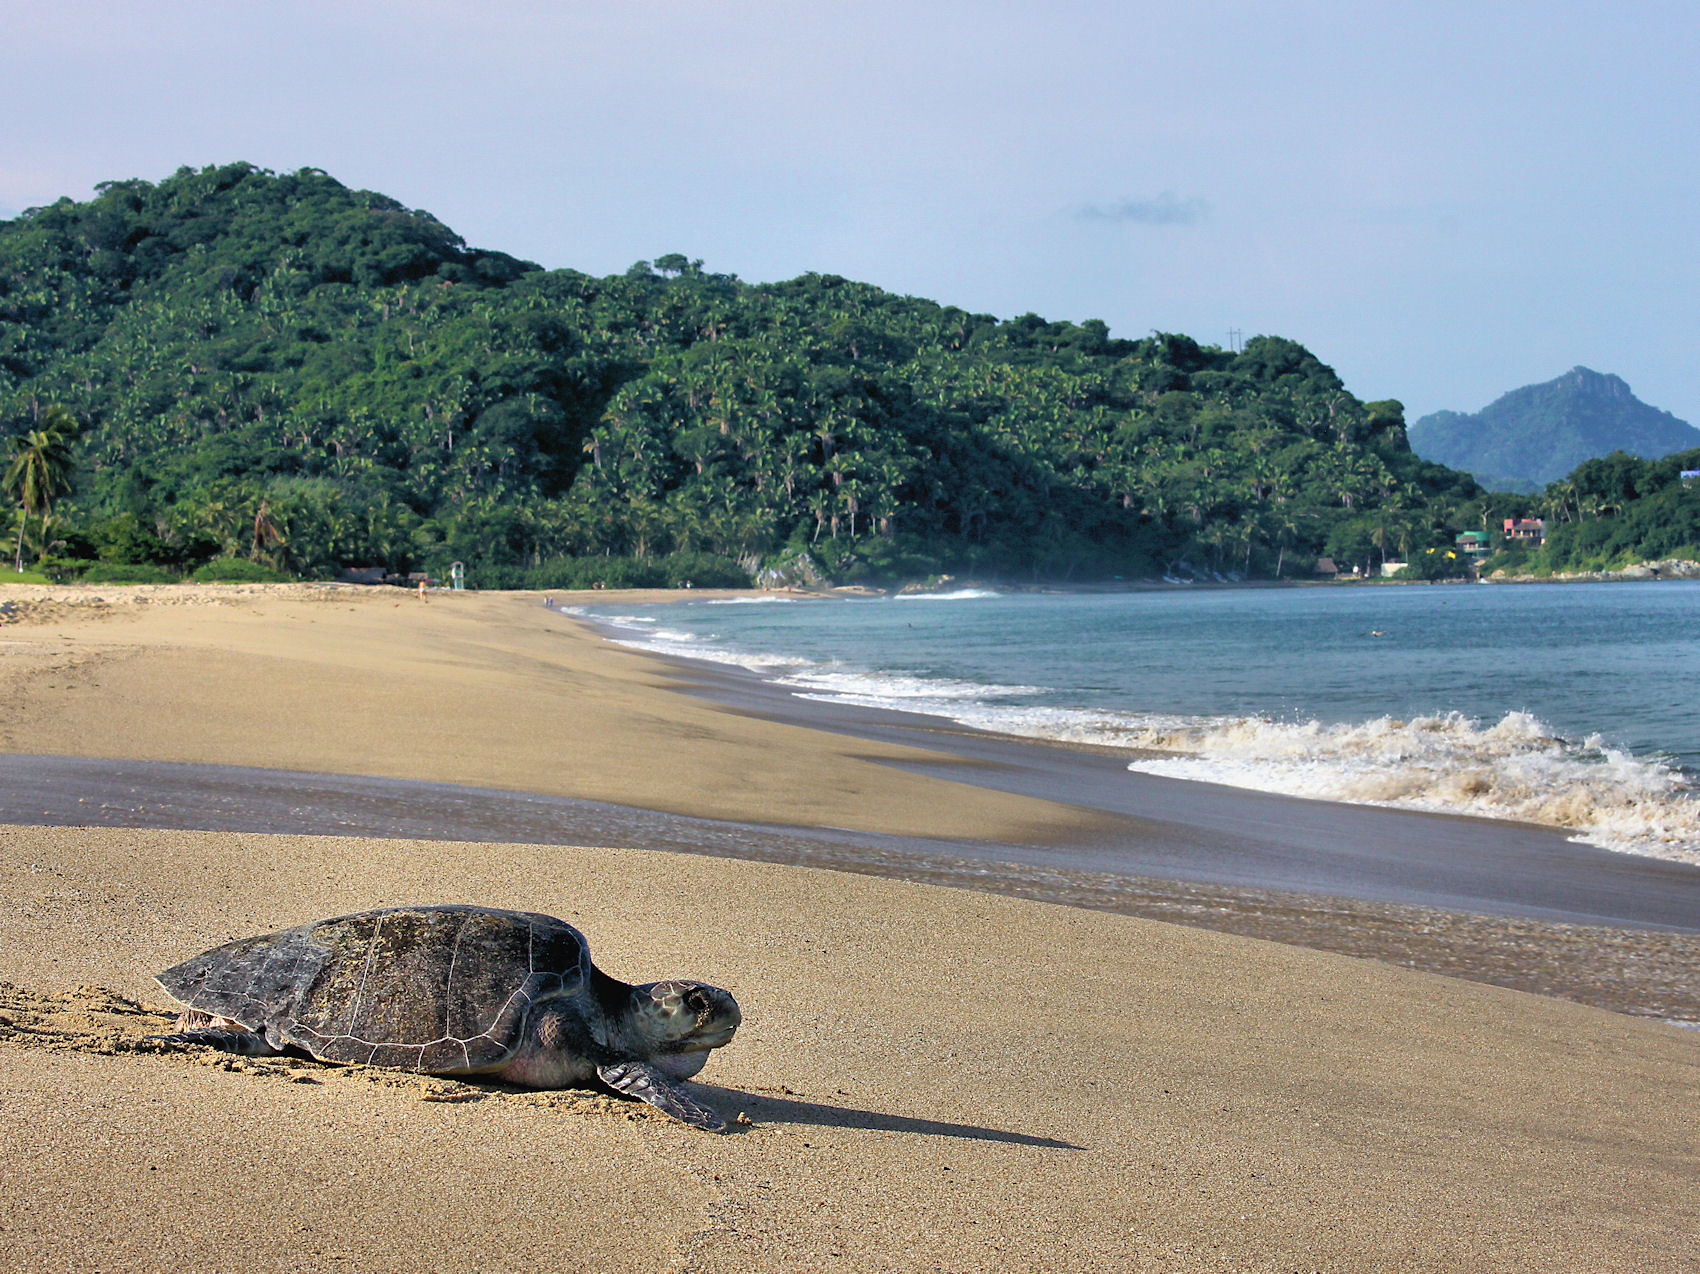 Marine Turtle Returning to the Sea